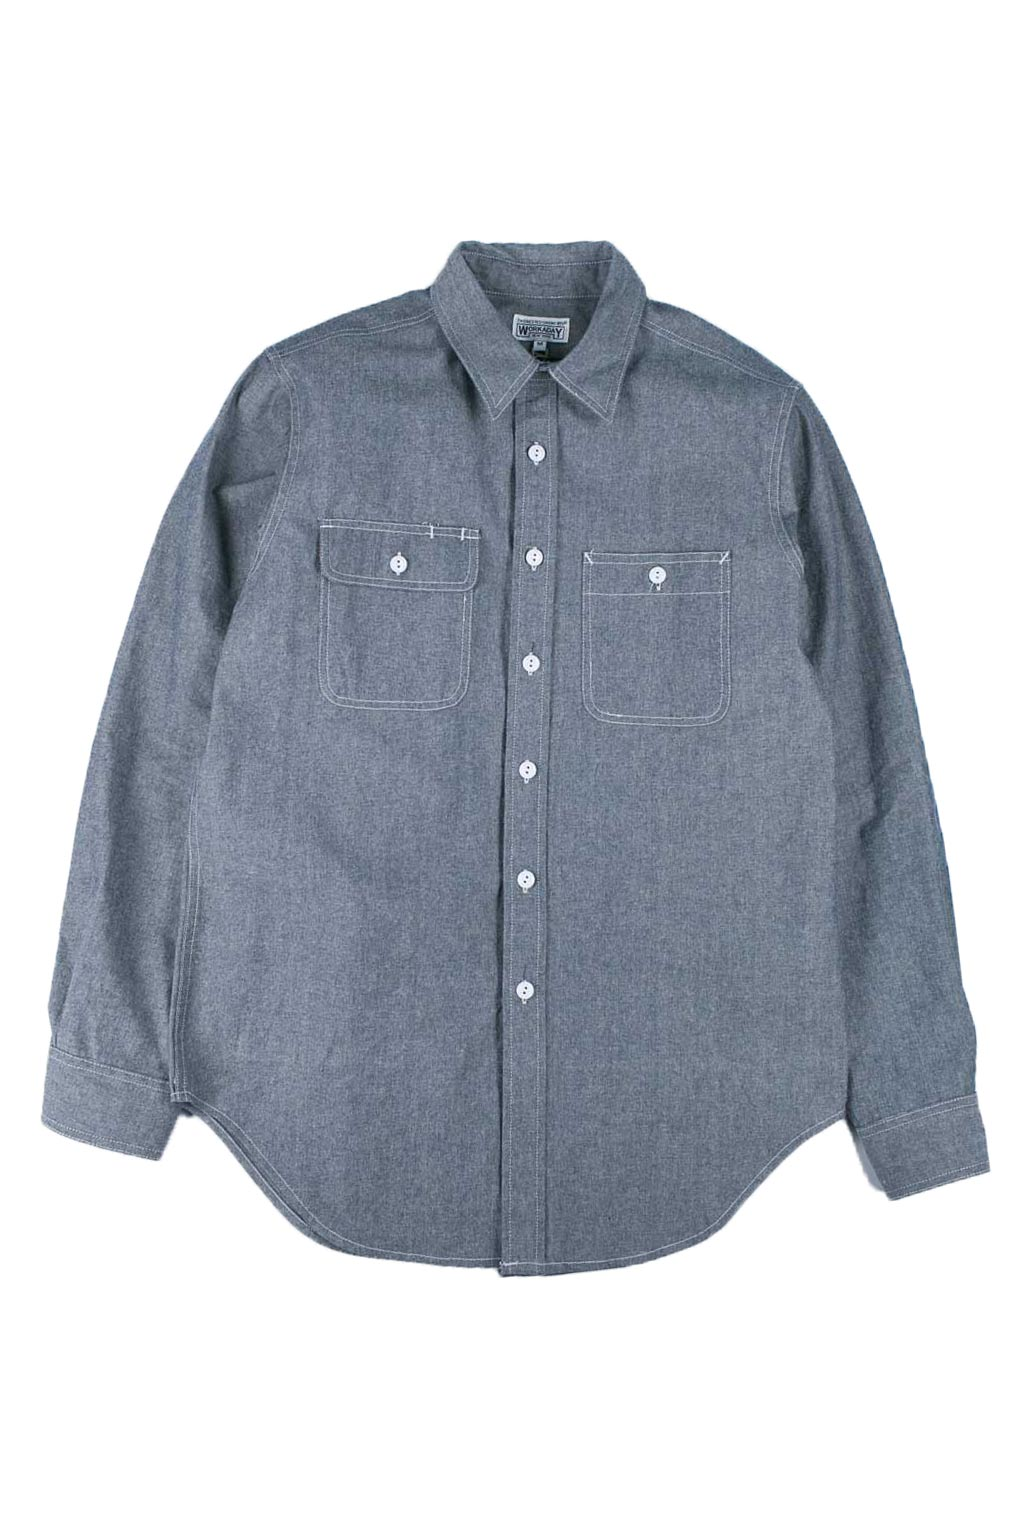 Utility Shirt - Indigo Heavy Cotton Chambray